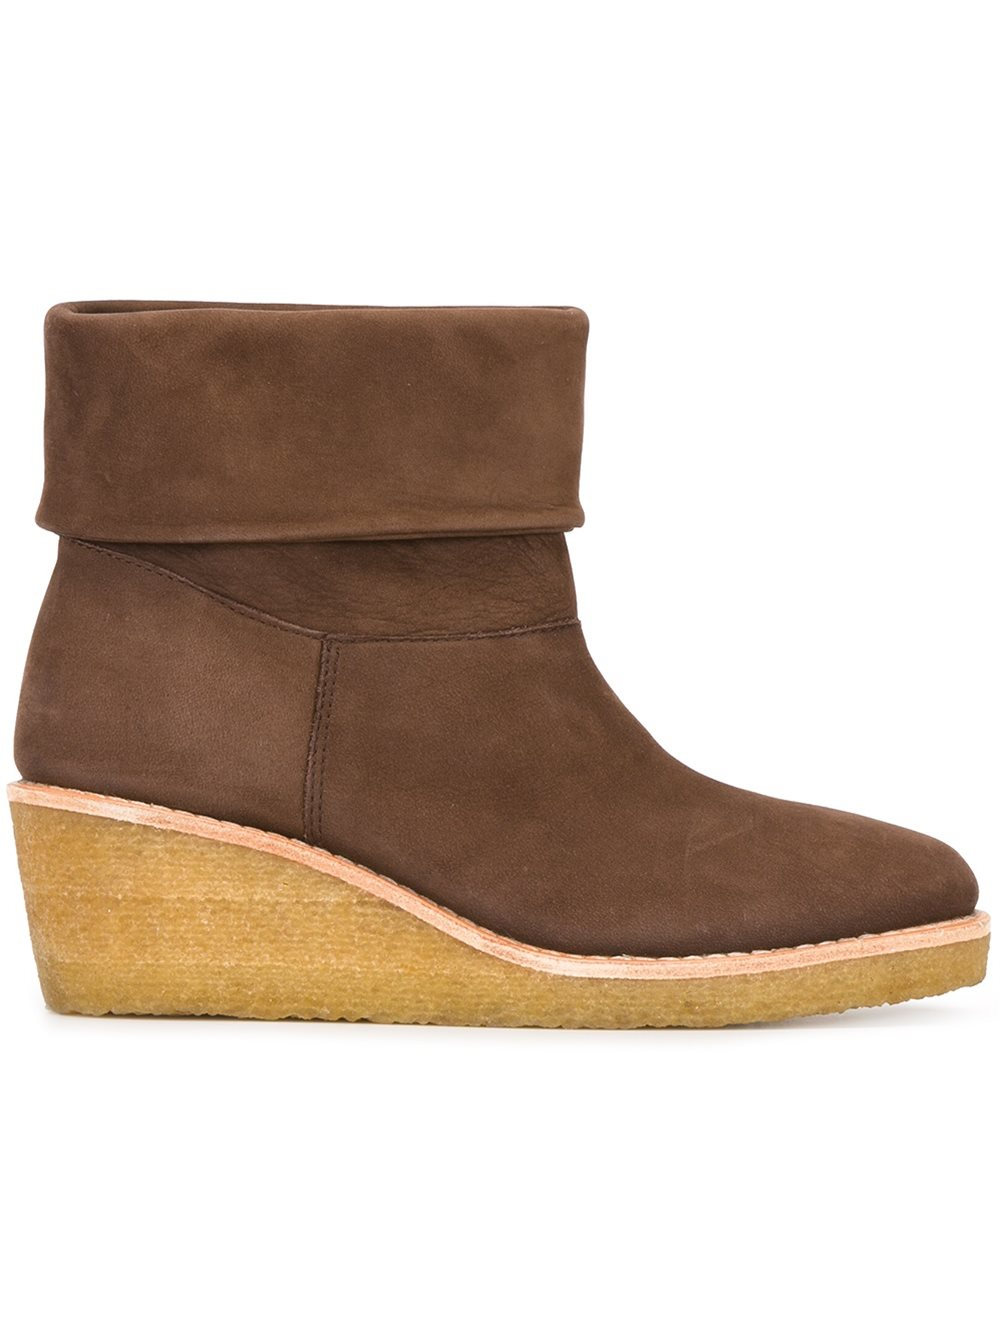 34d3c6a018d5 Lyst - A.P.C. Platform Ankle Boots in Brown